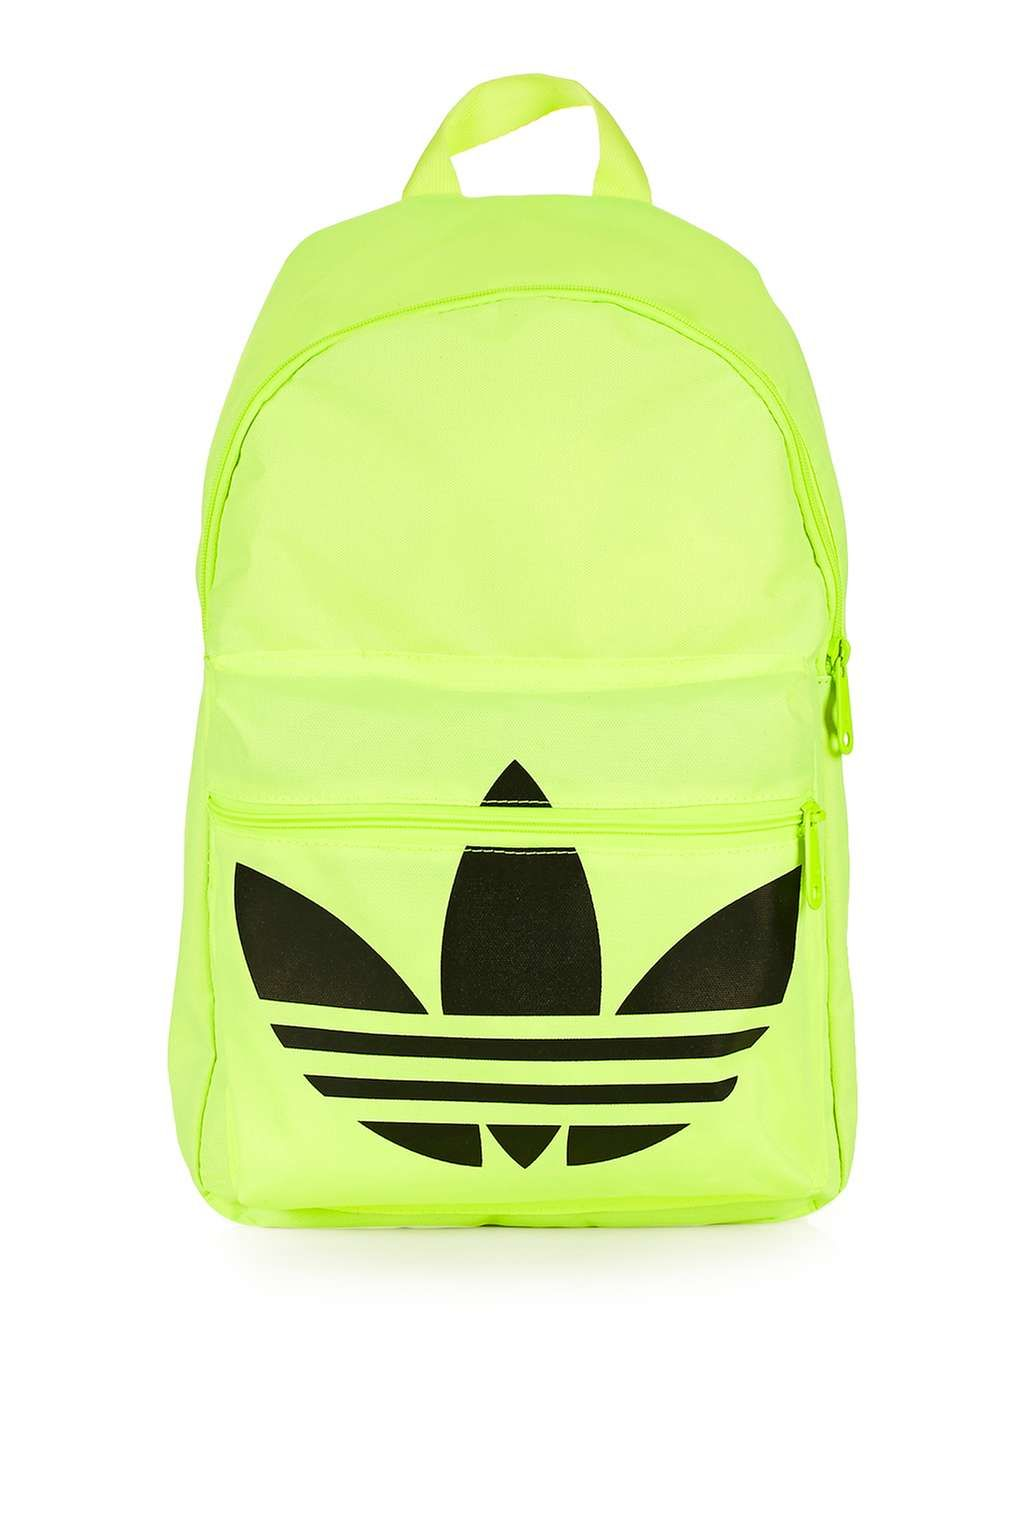 adidas backpack singapore